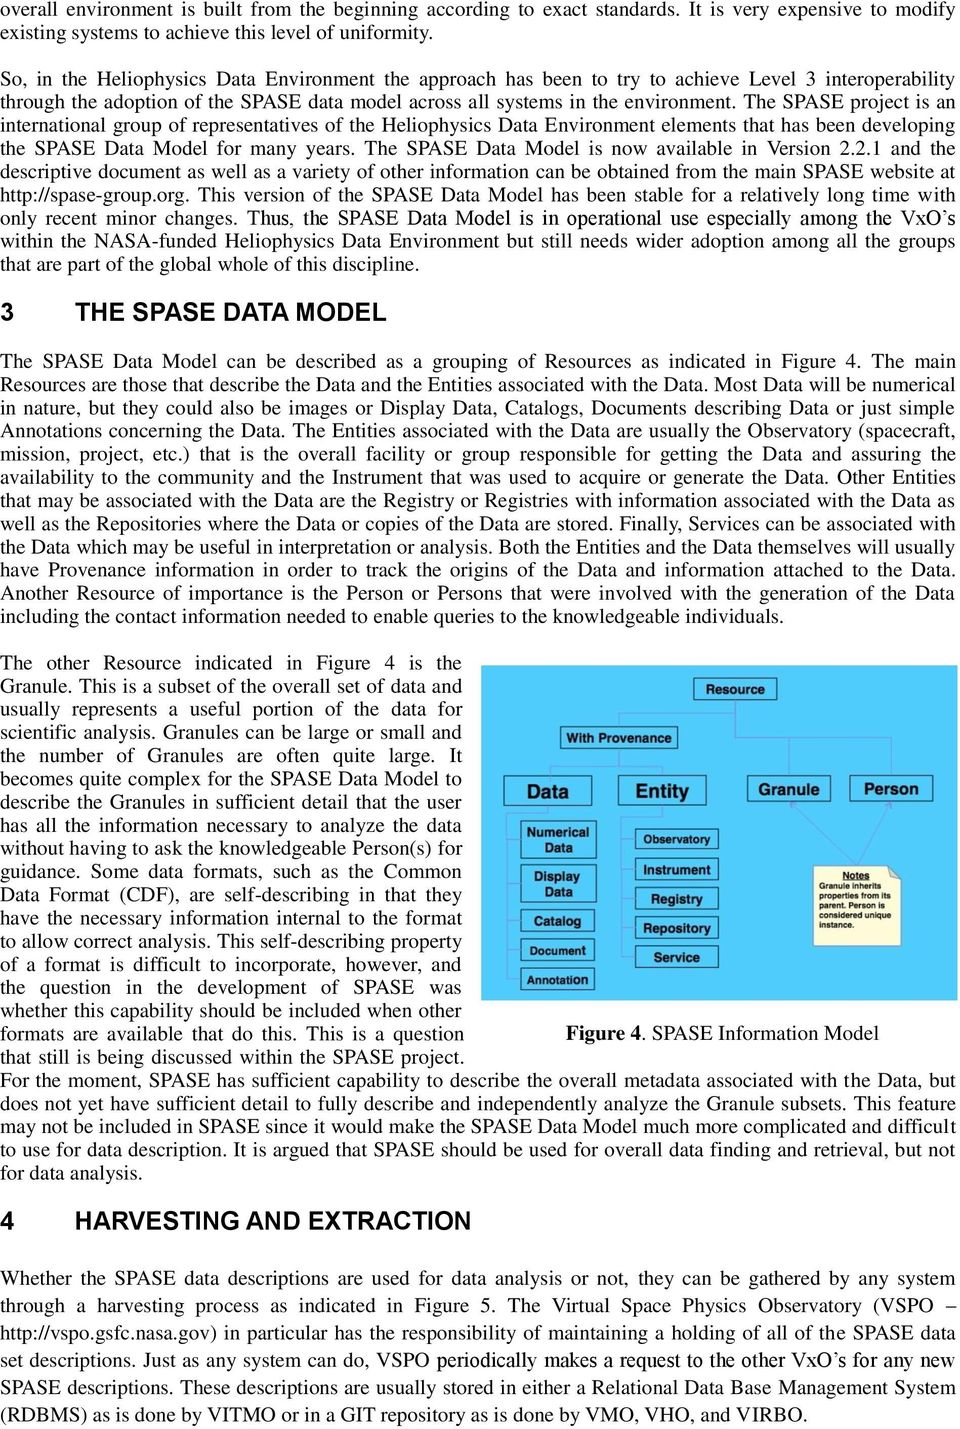 The SPASE project is an international group of representatives of the Heliophysics Data Environment elements that has been developing the SPASE Data Model for many years.